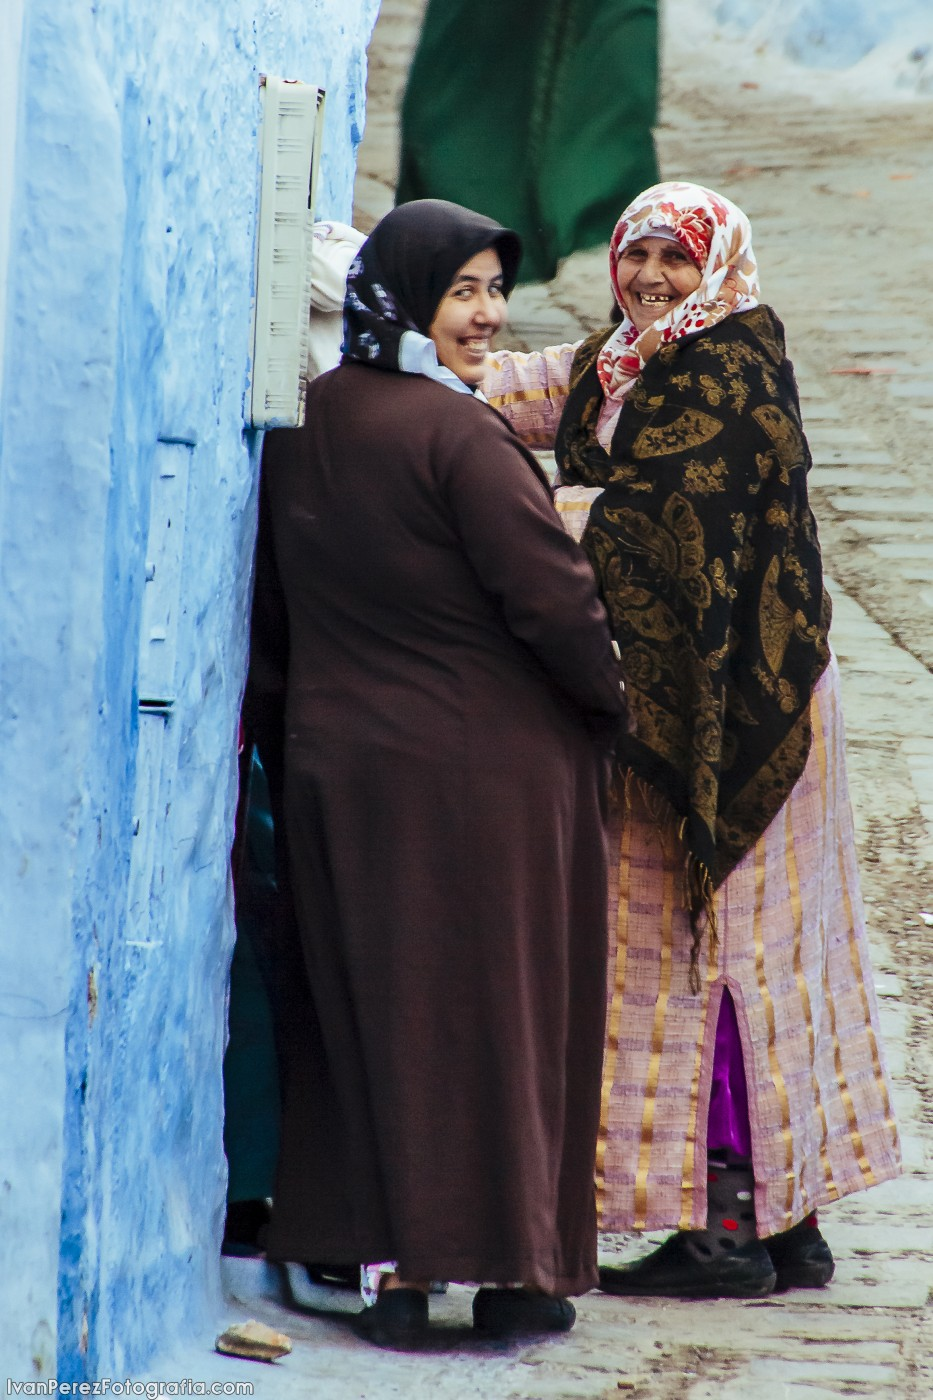 chefchaouen-mujeres